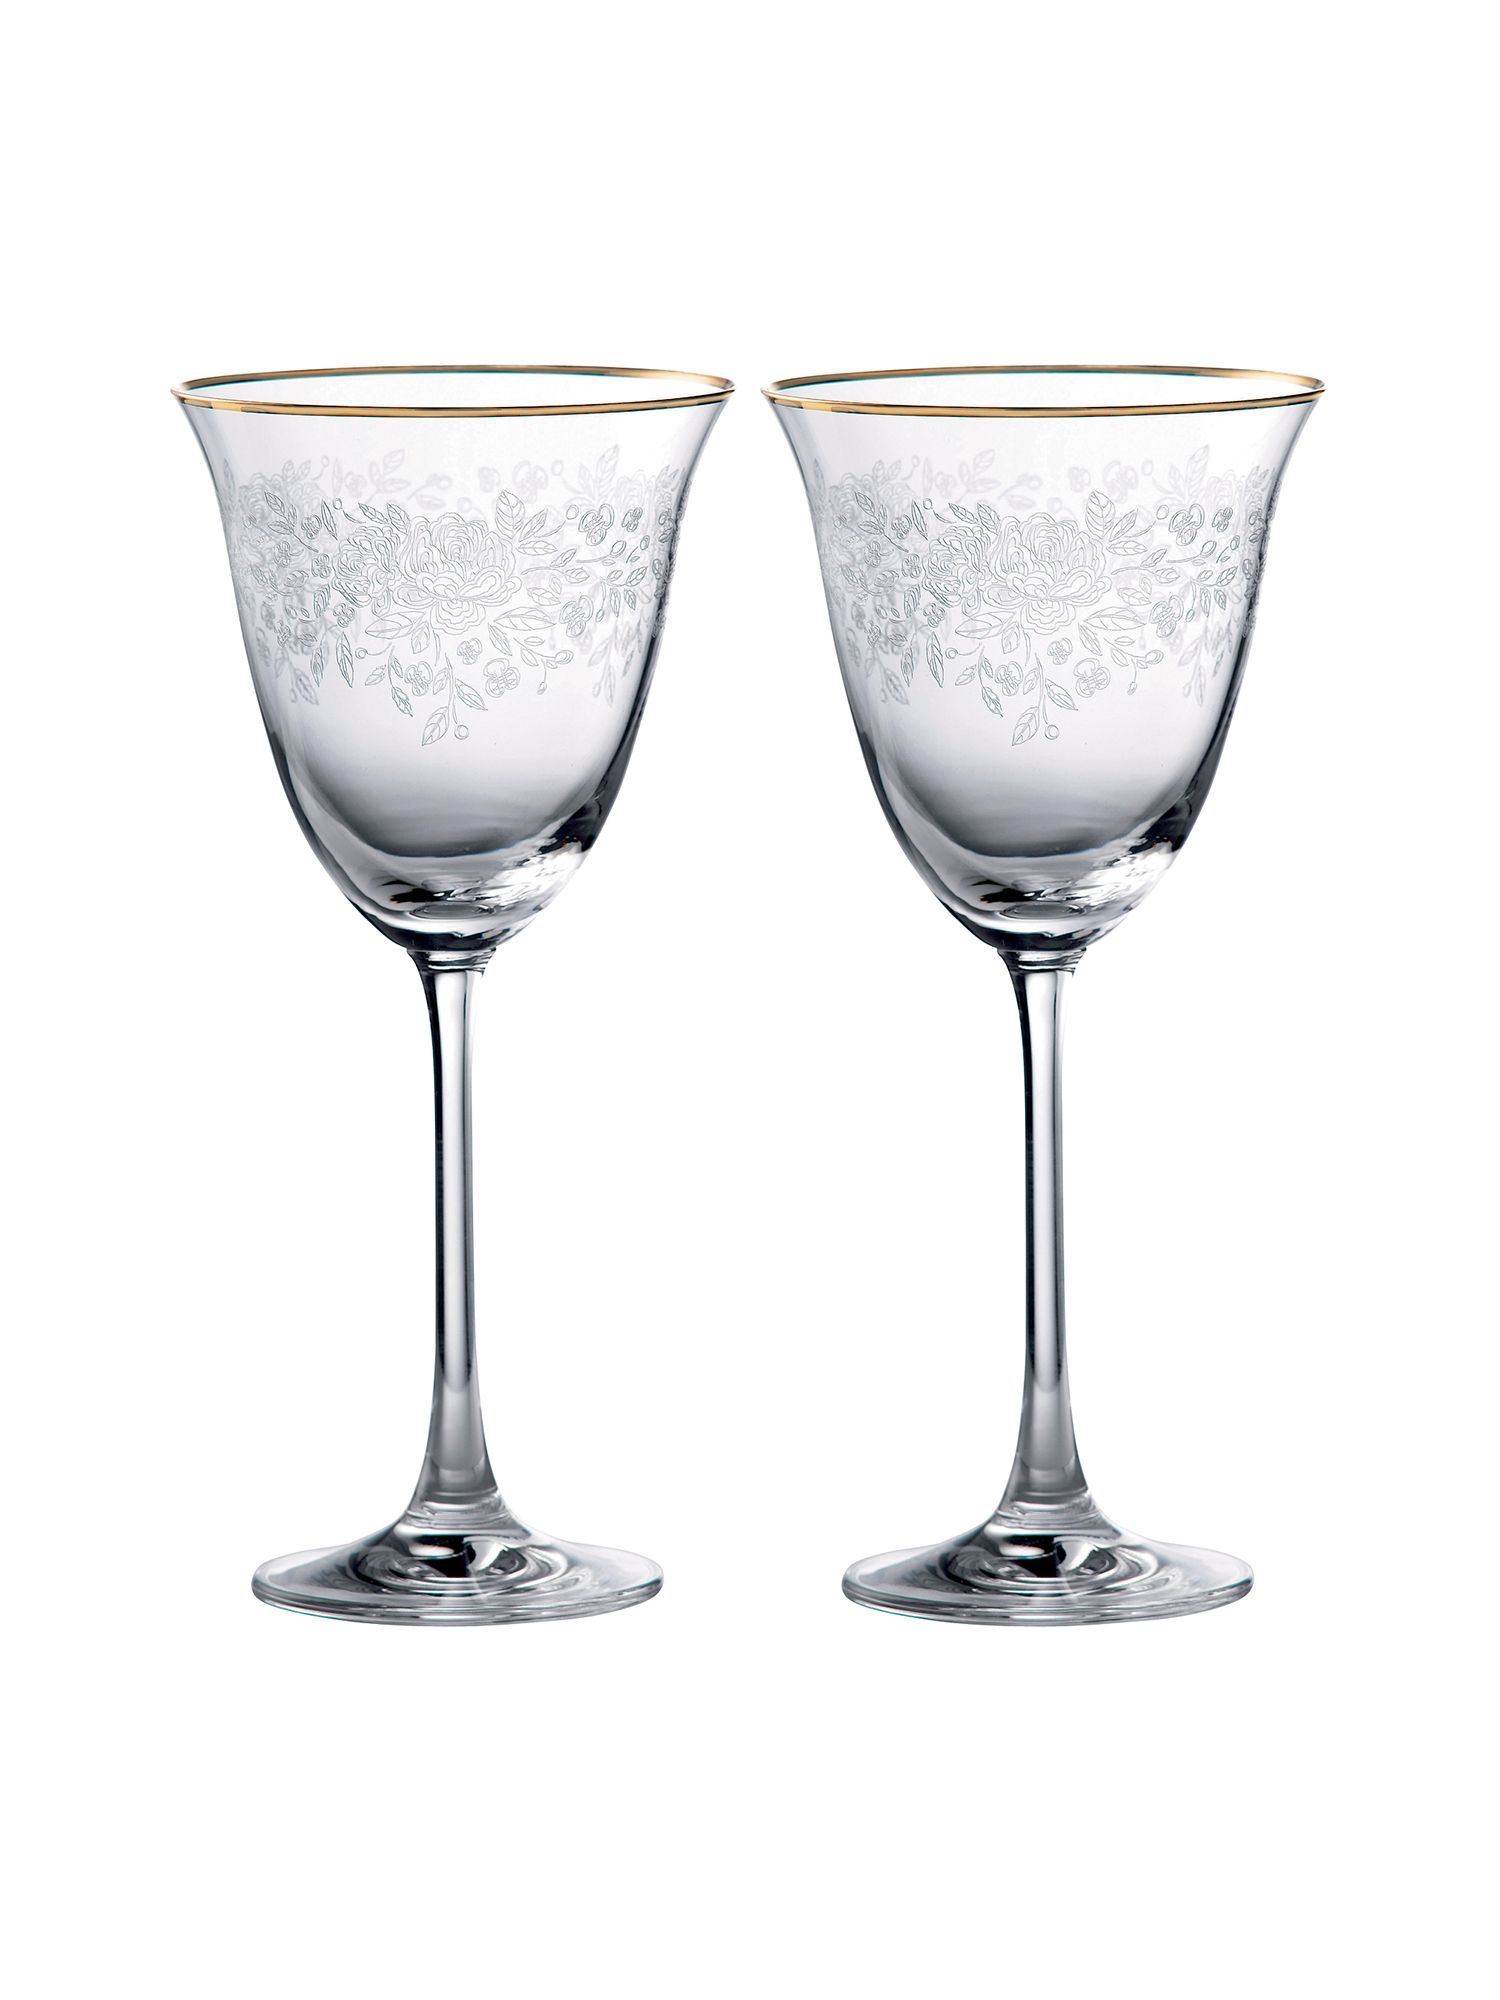 Set of 2 crystal wine glasses